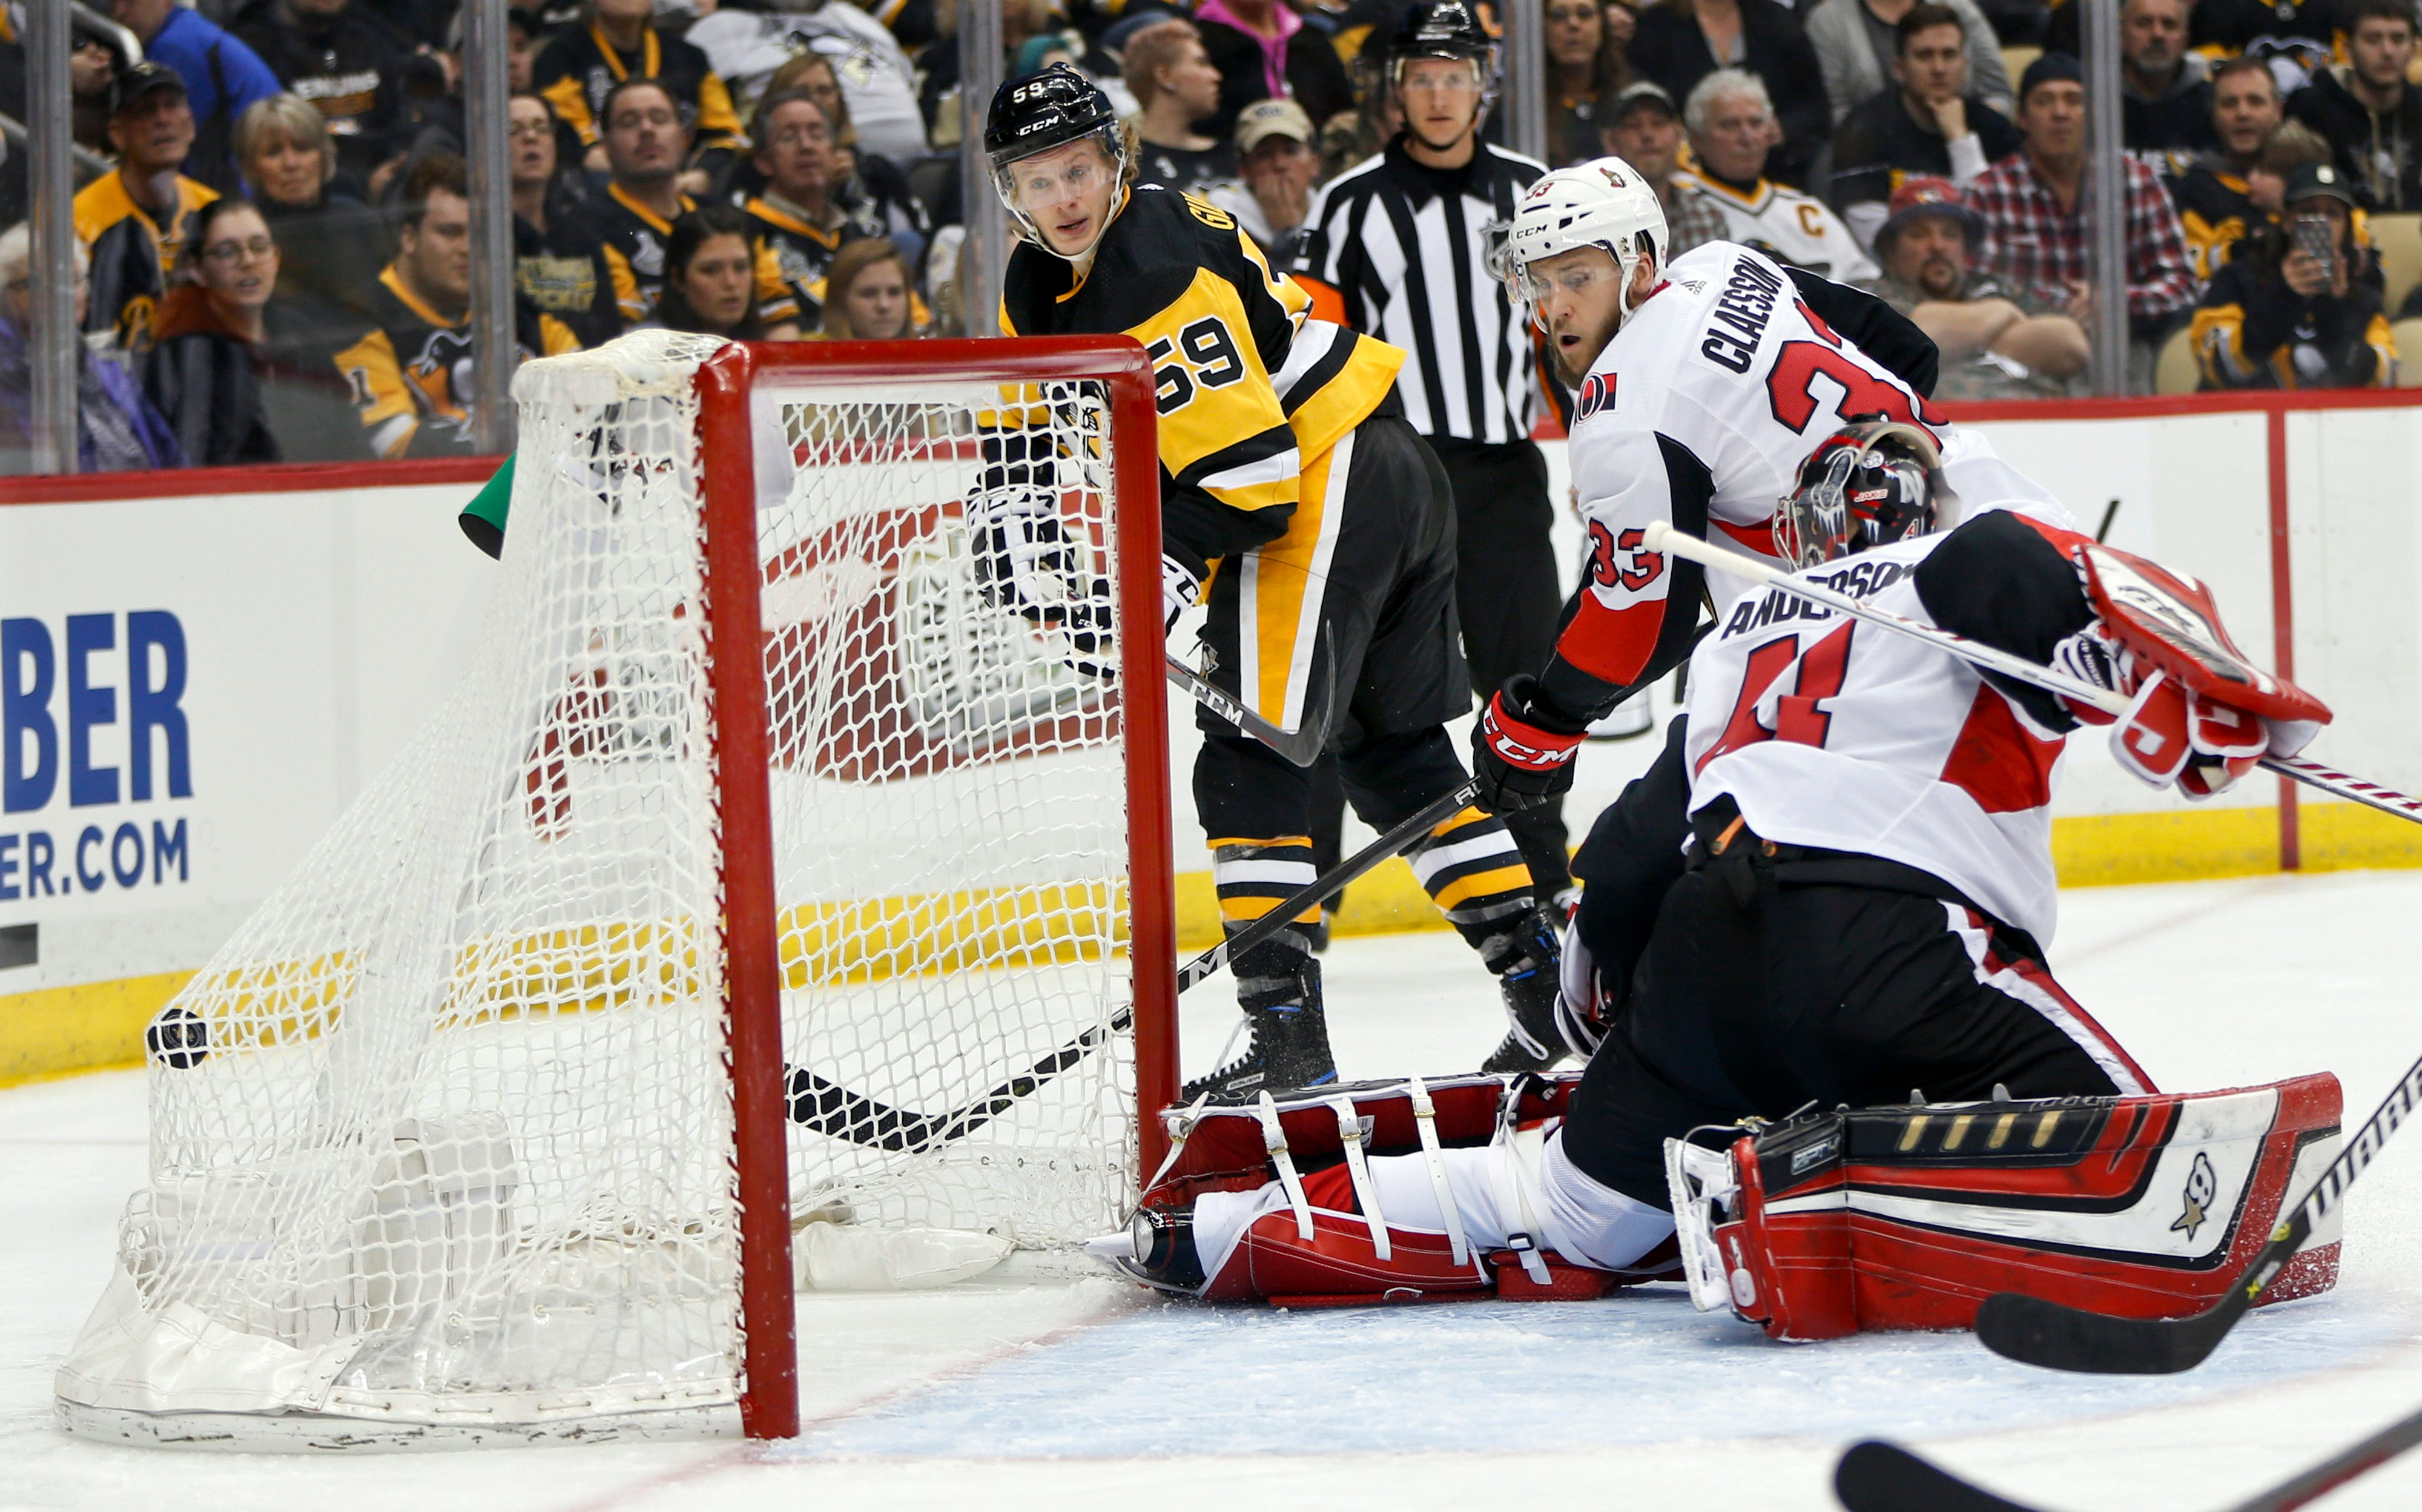 Penguins top Senators 4-0 to earn home-ice in 1st round